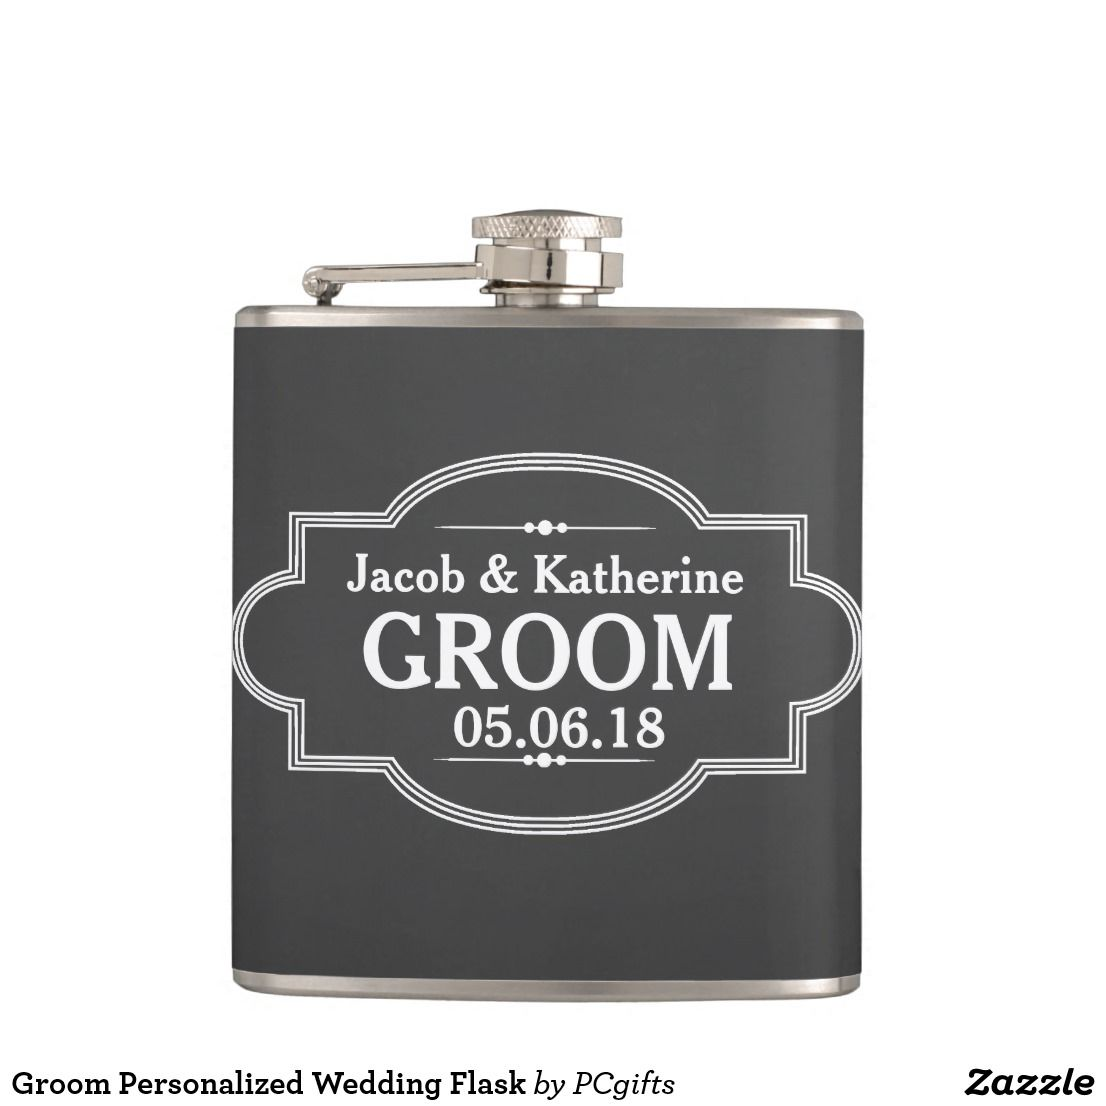 Wedding Gifts For Ushers And Best Man: Groom Personalized Wedding Flask. Email Me At Sales